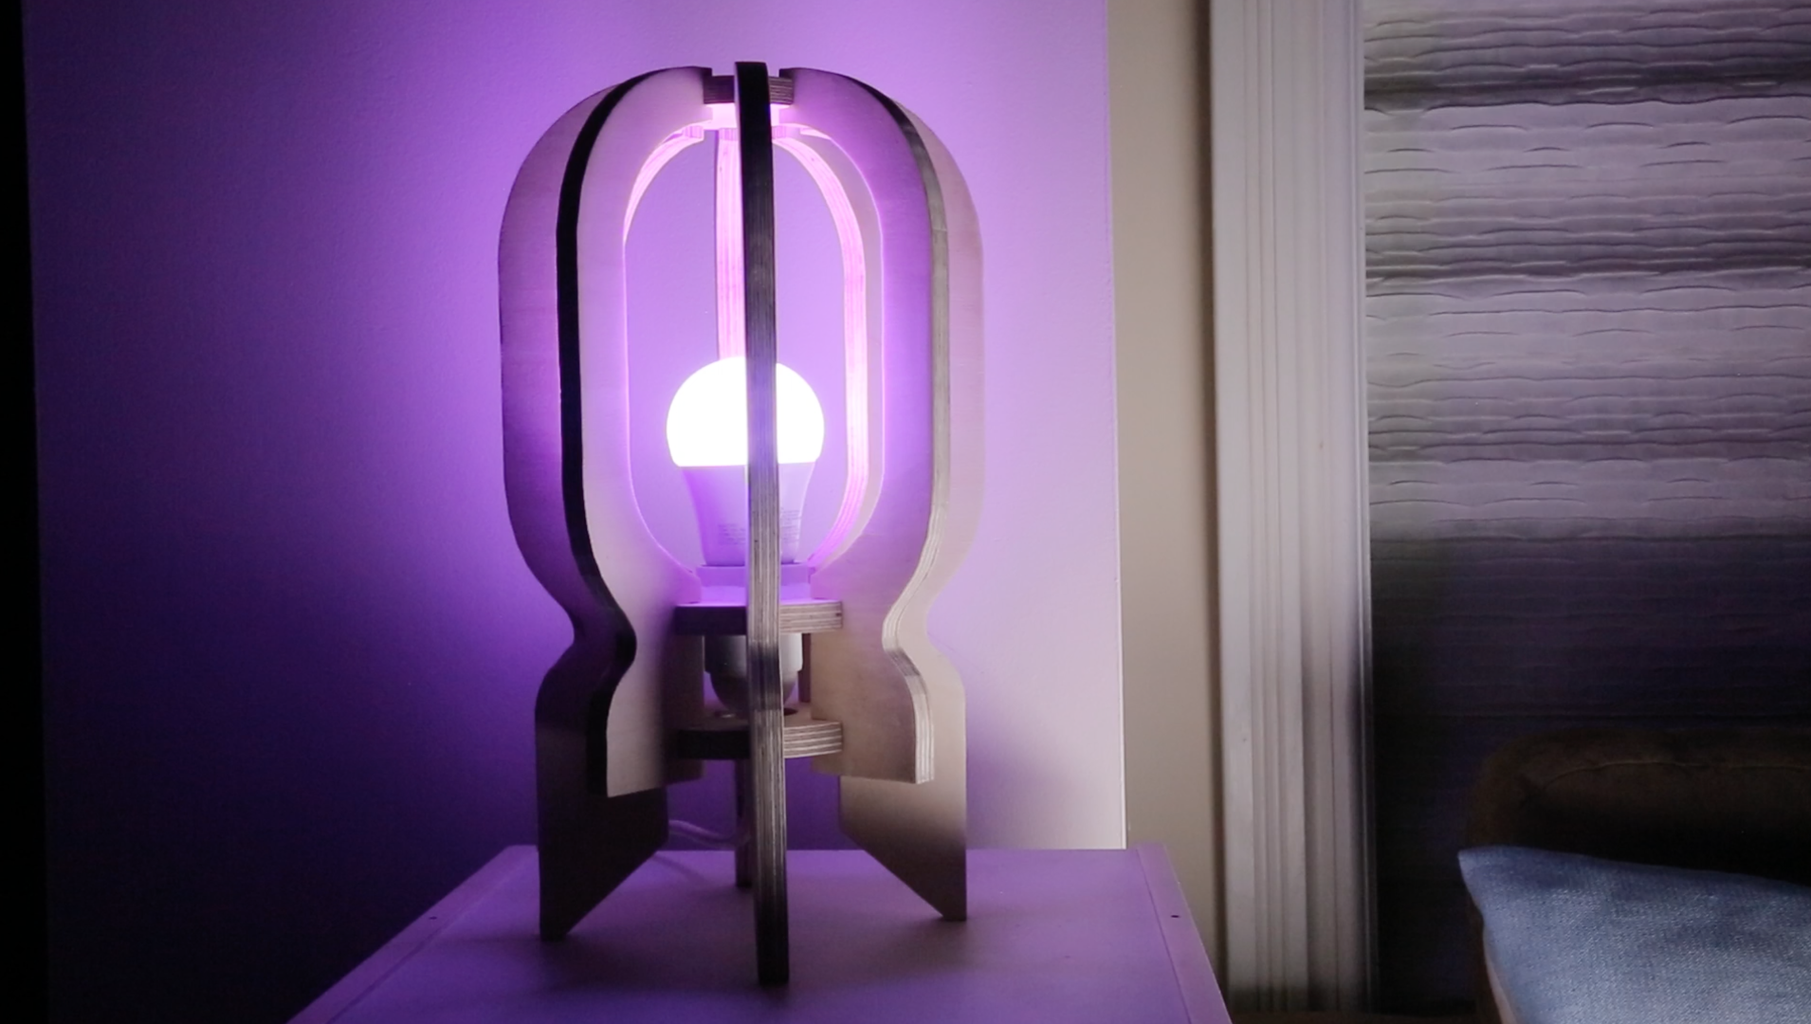 And Here It Is! Your Cosmic Rocket Lamp Is Ready =)